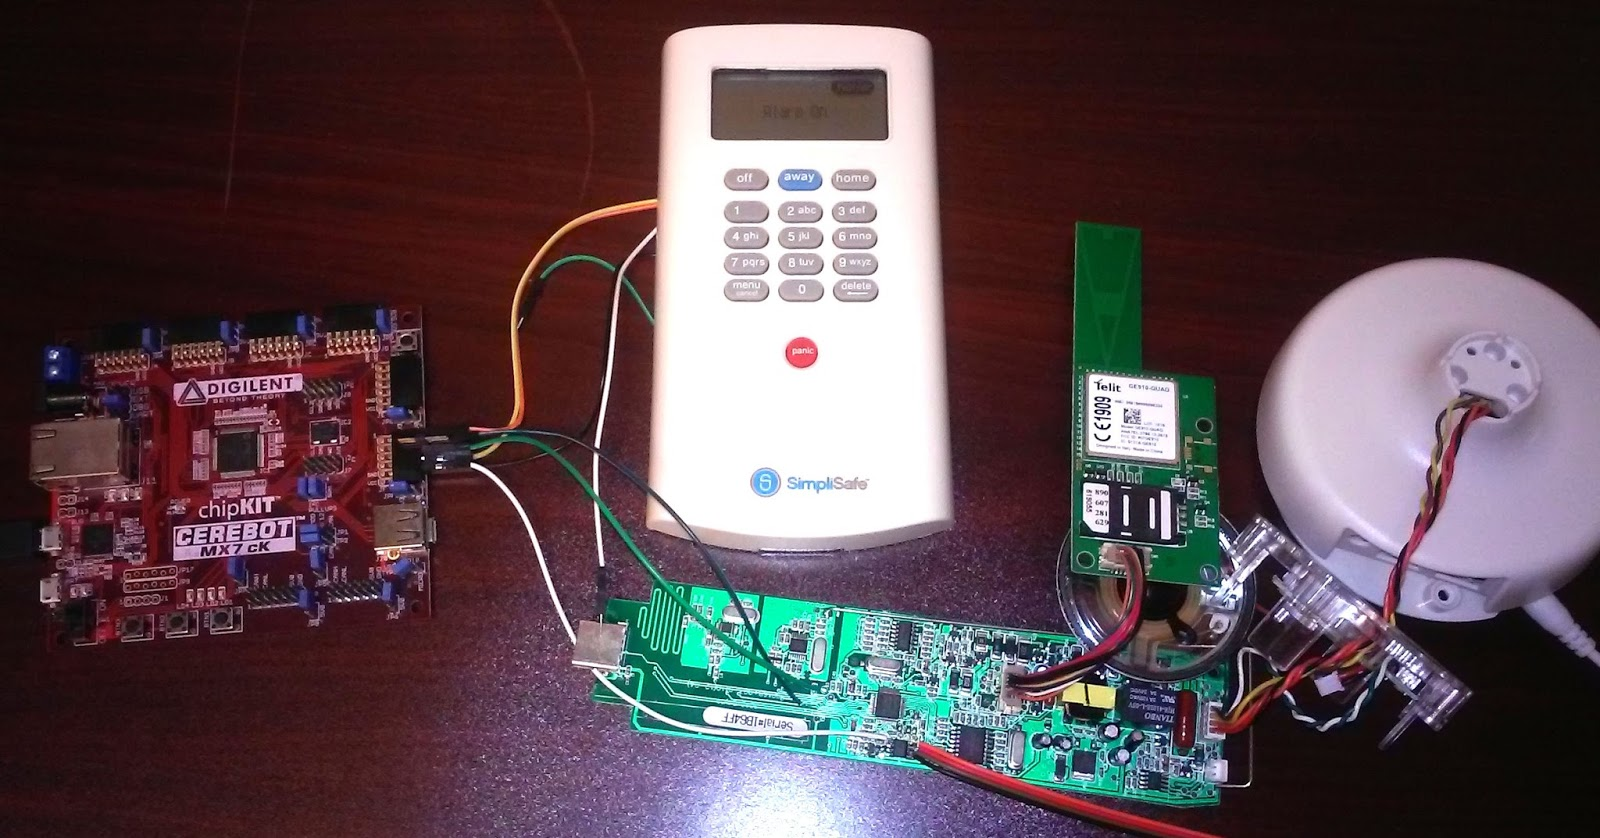 New Research Suggests Alarm System Simplisafe Simply Isn T